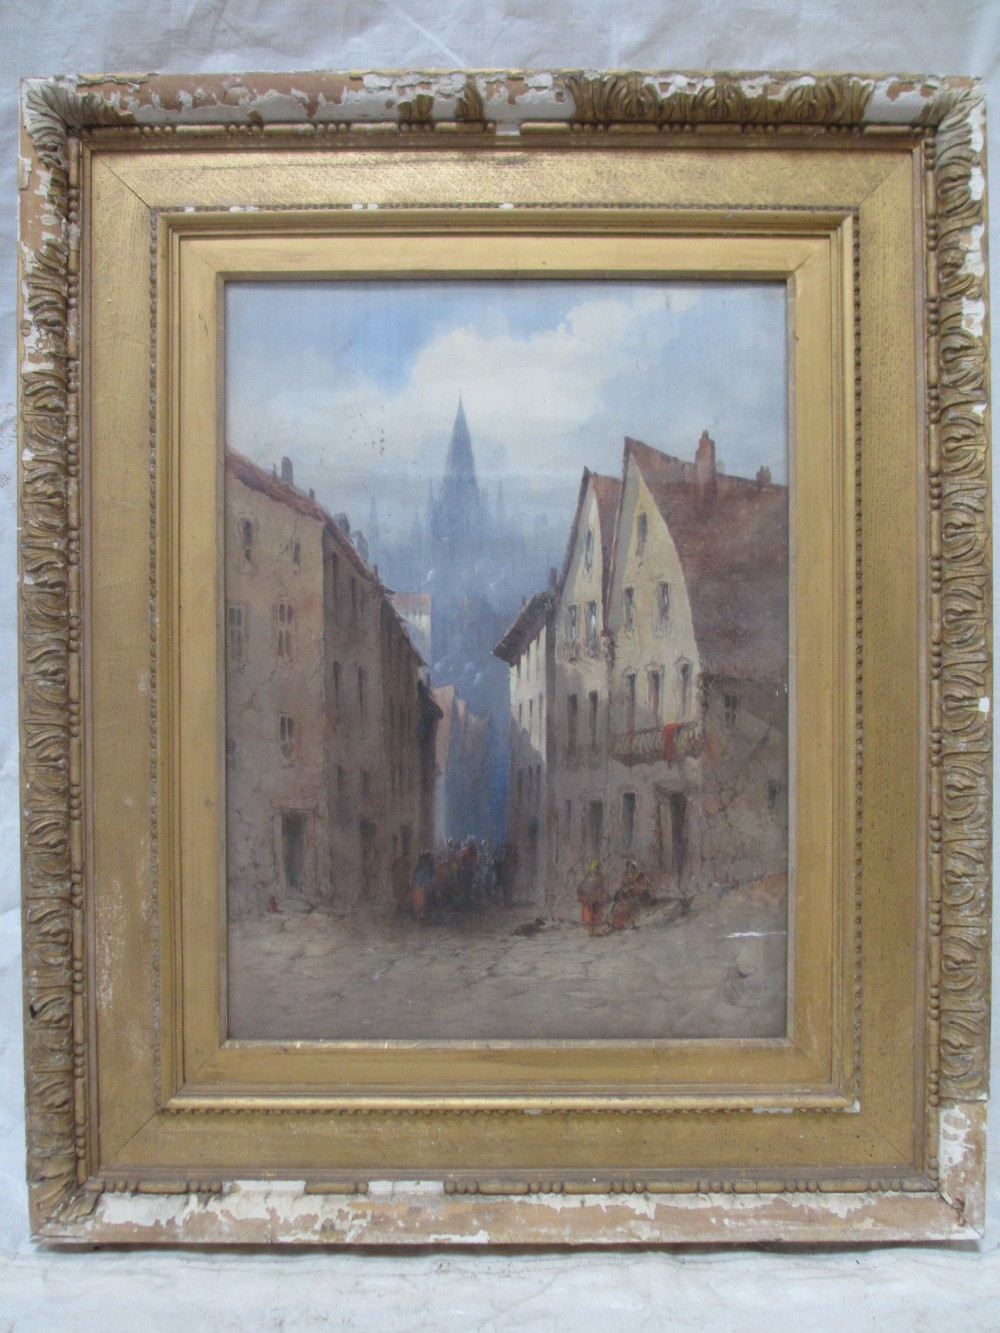 19th century watercolour of continental street with cathedral landscape